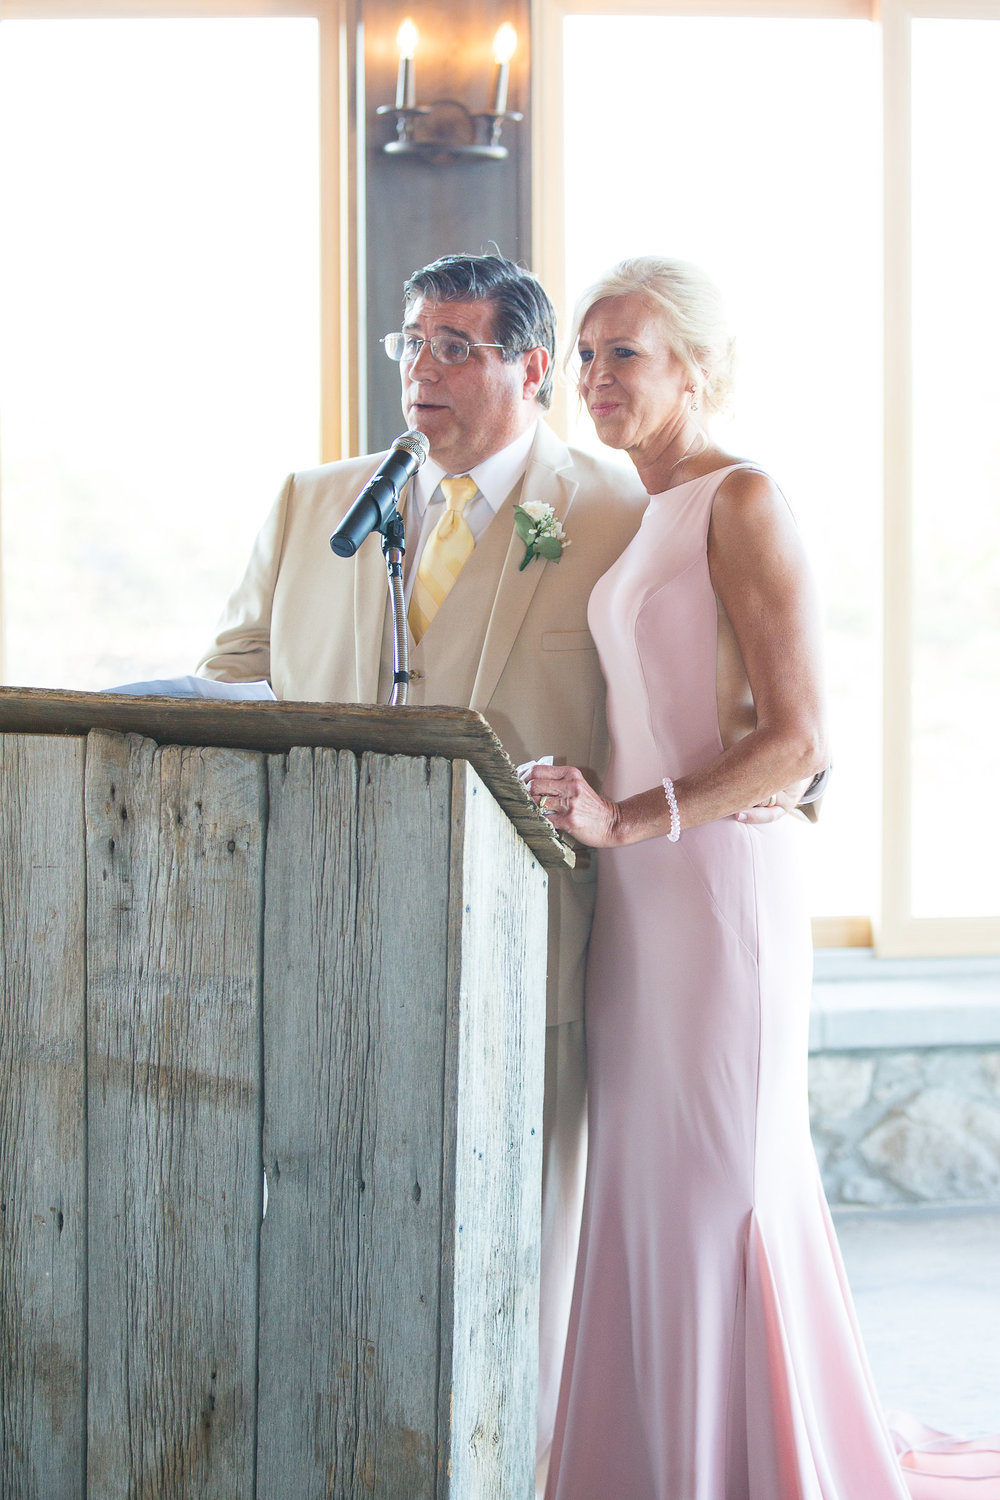 GarneauWeddingReception©ASP-76.jpg